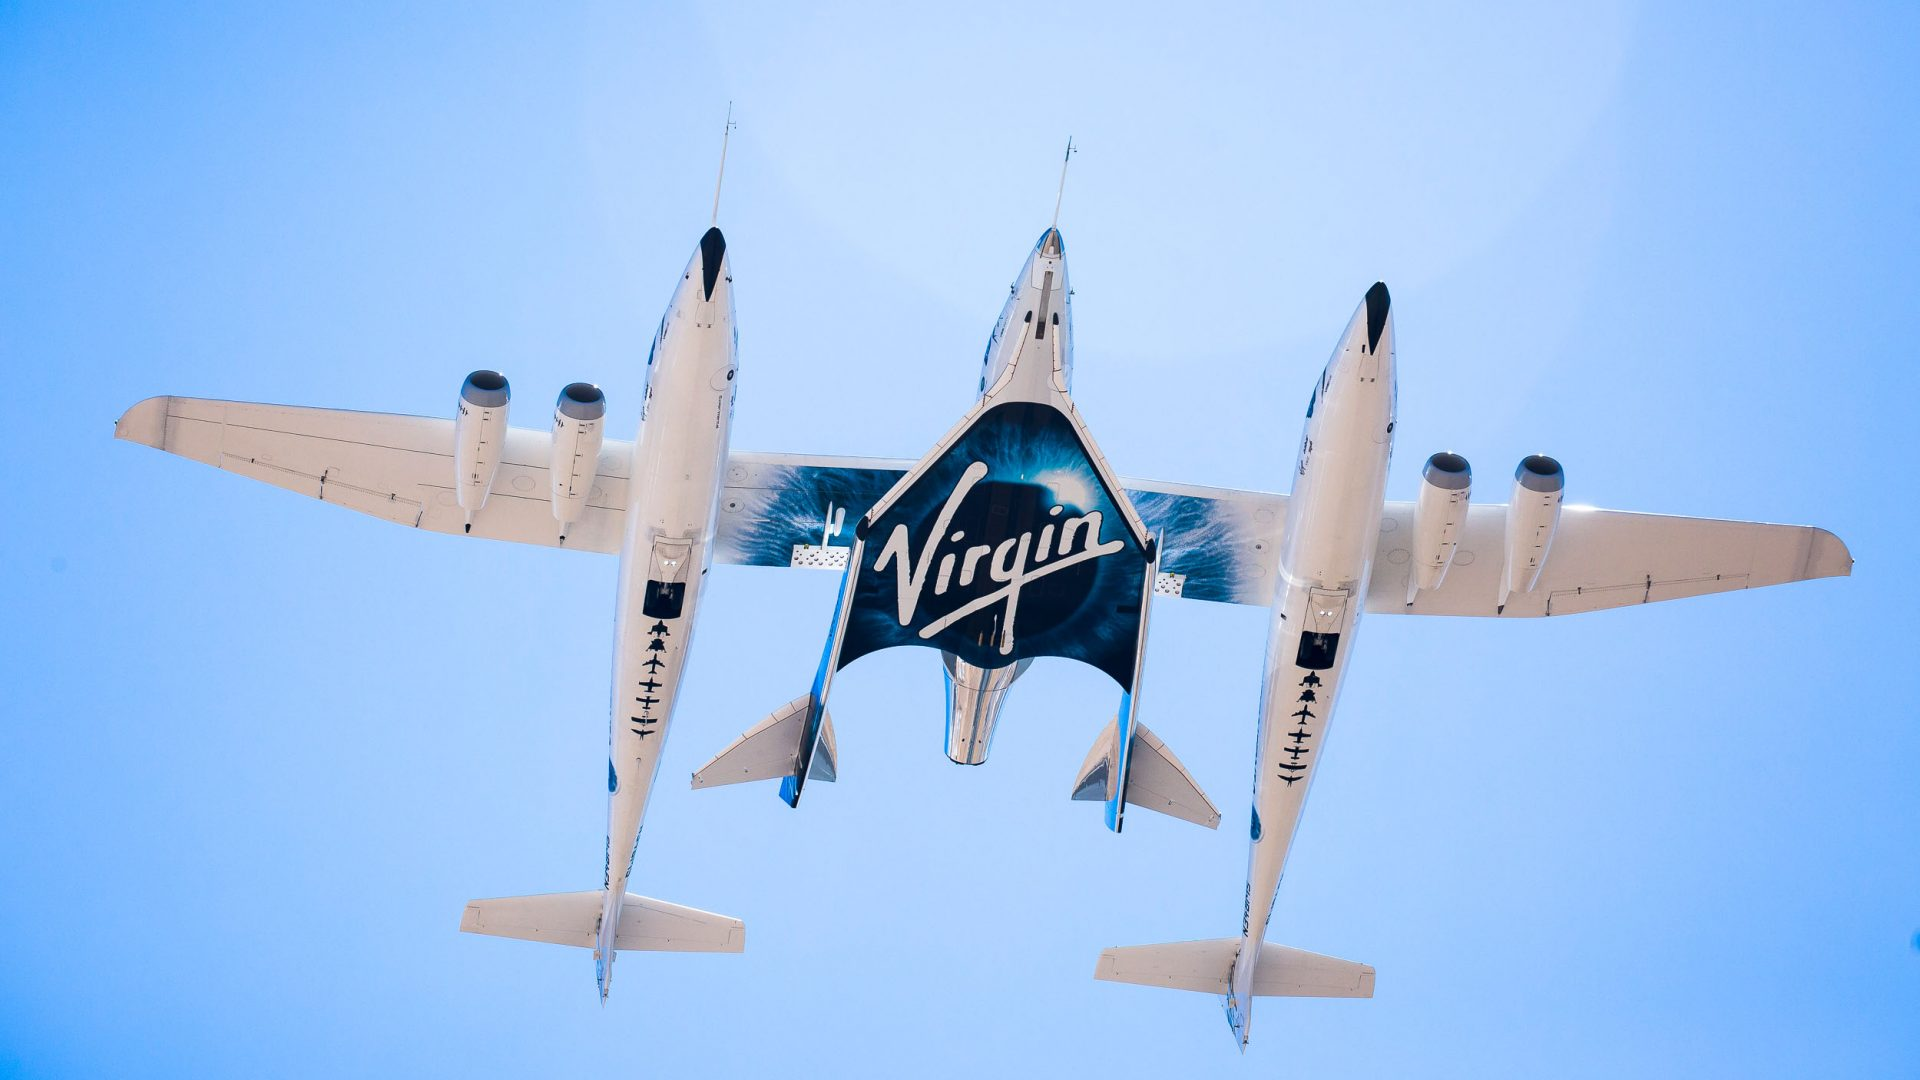 Virgin Galactic aircraft take to the skies.